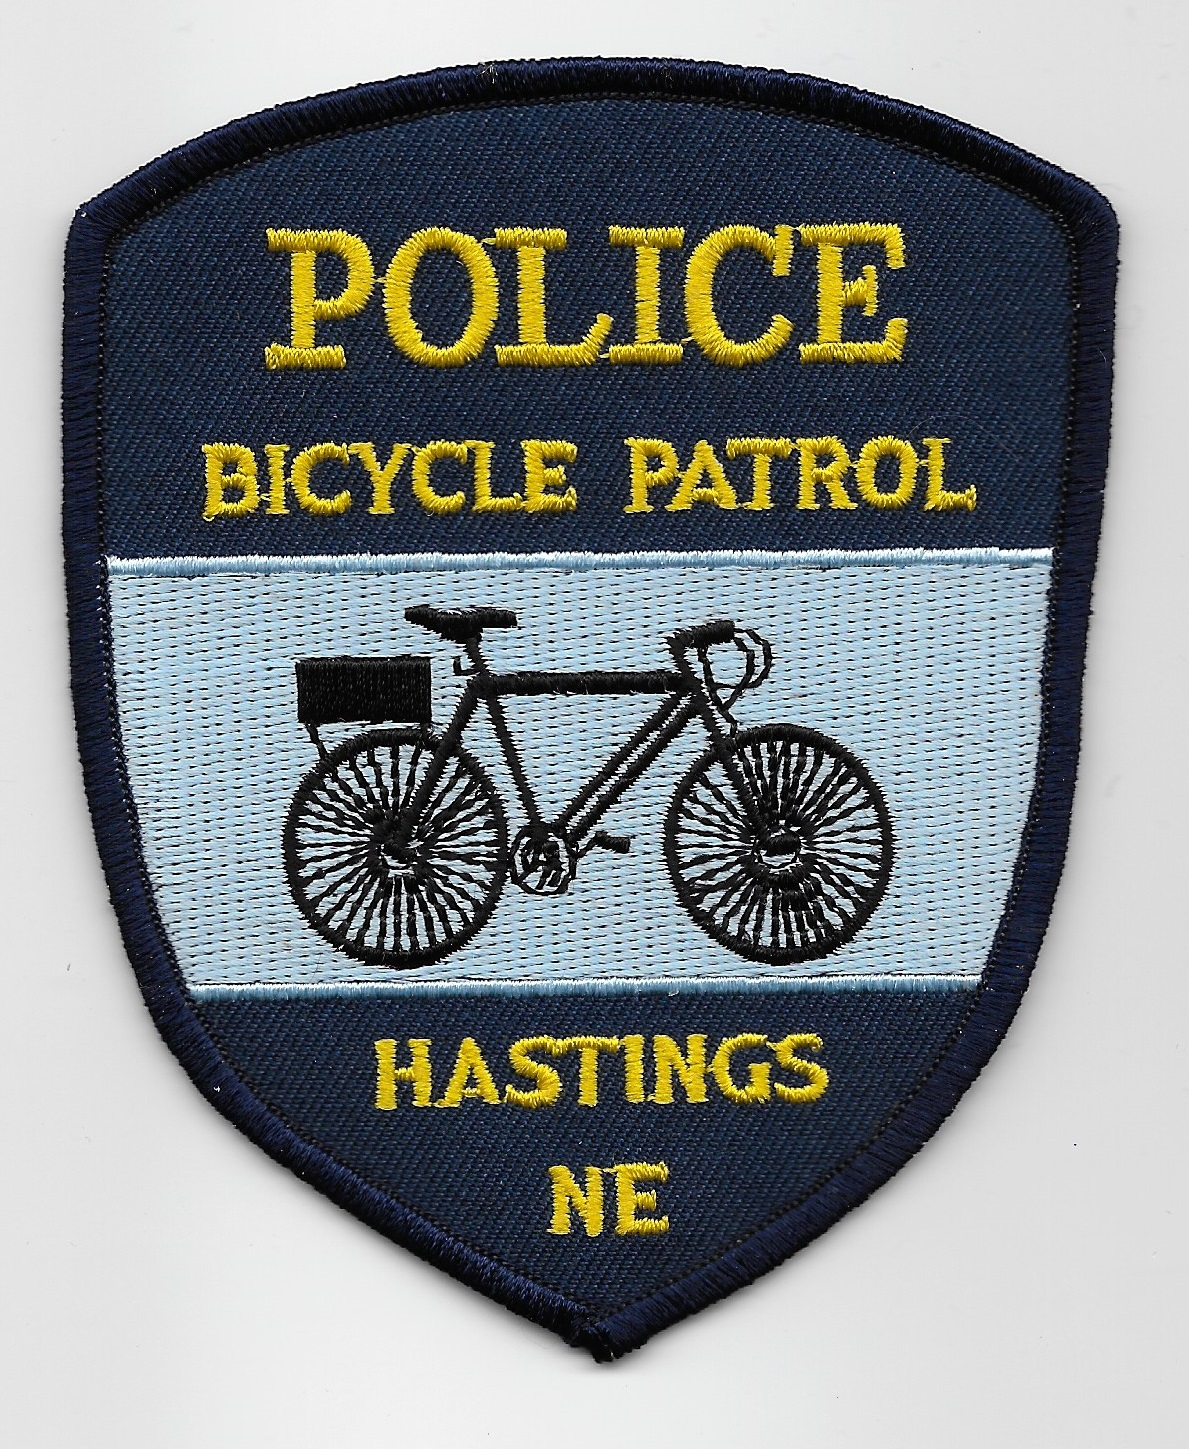 Hastings Police Bike Unit NE